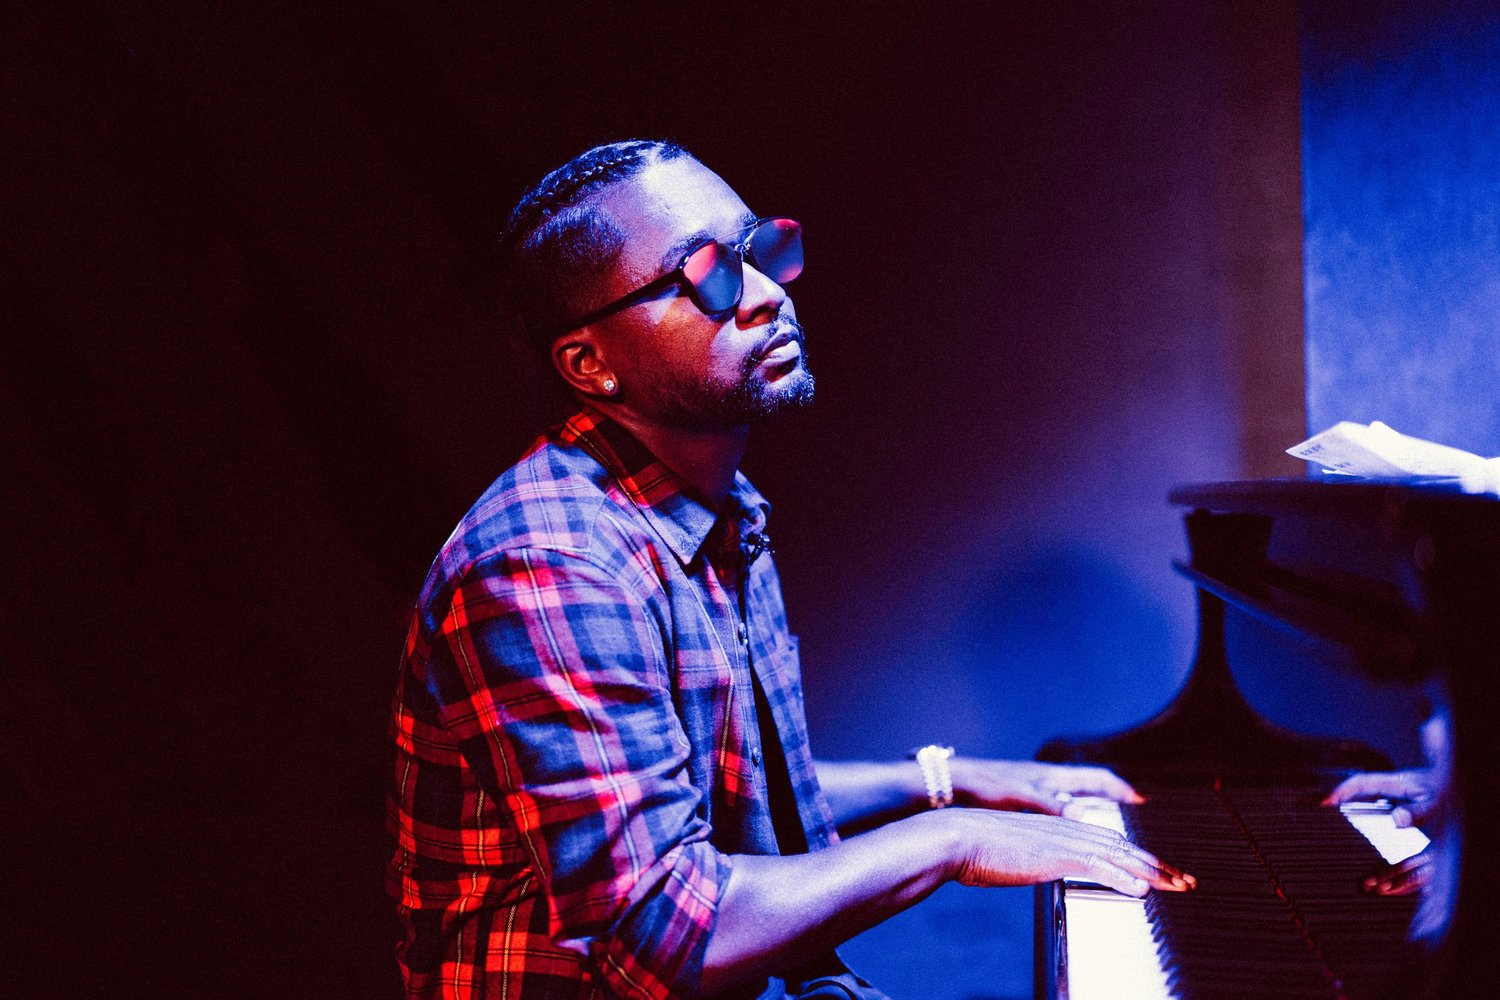 hip-hop-producer-zaytoven-performing-on-the-piano.jpg